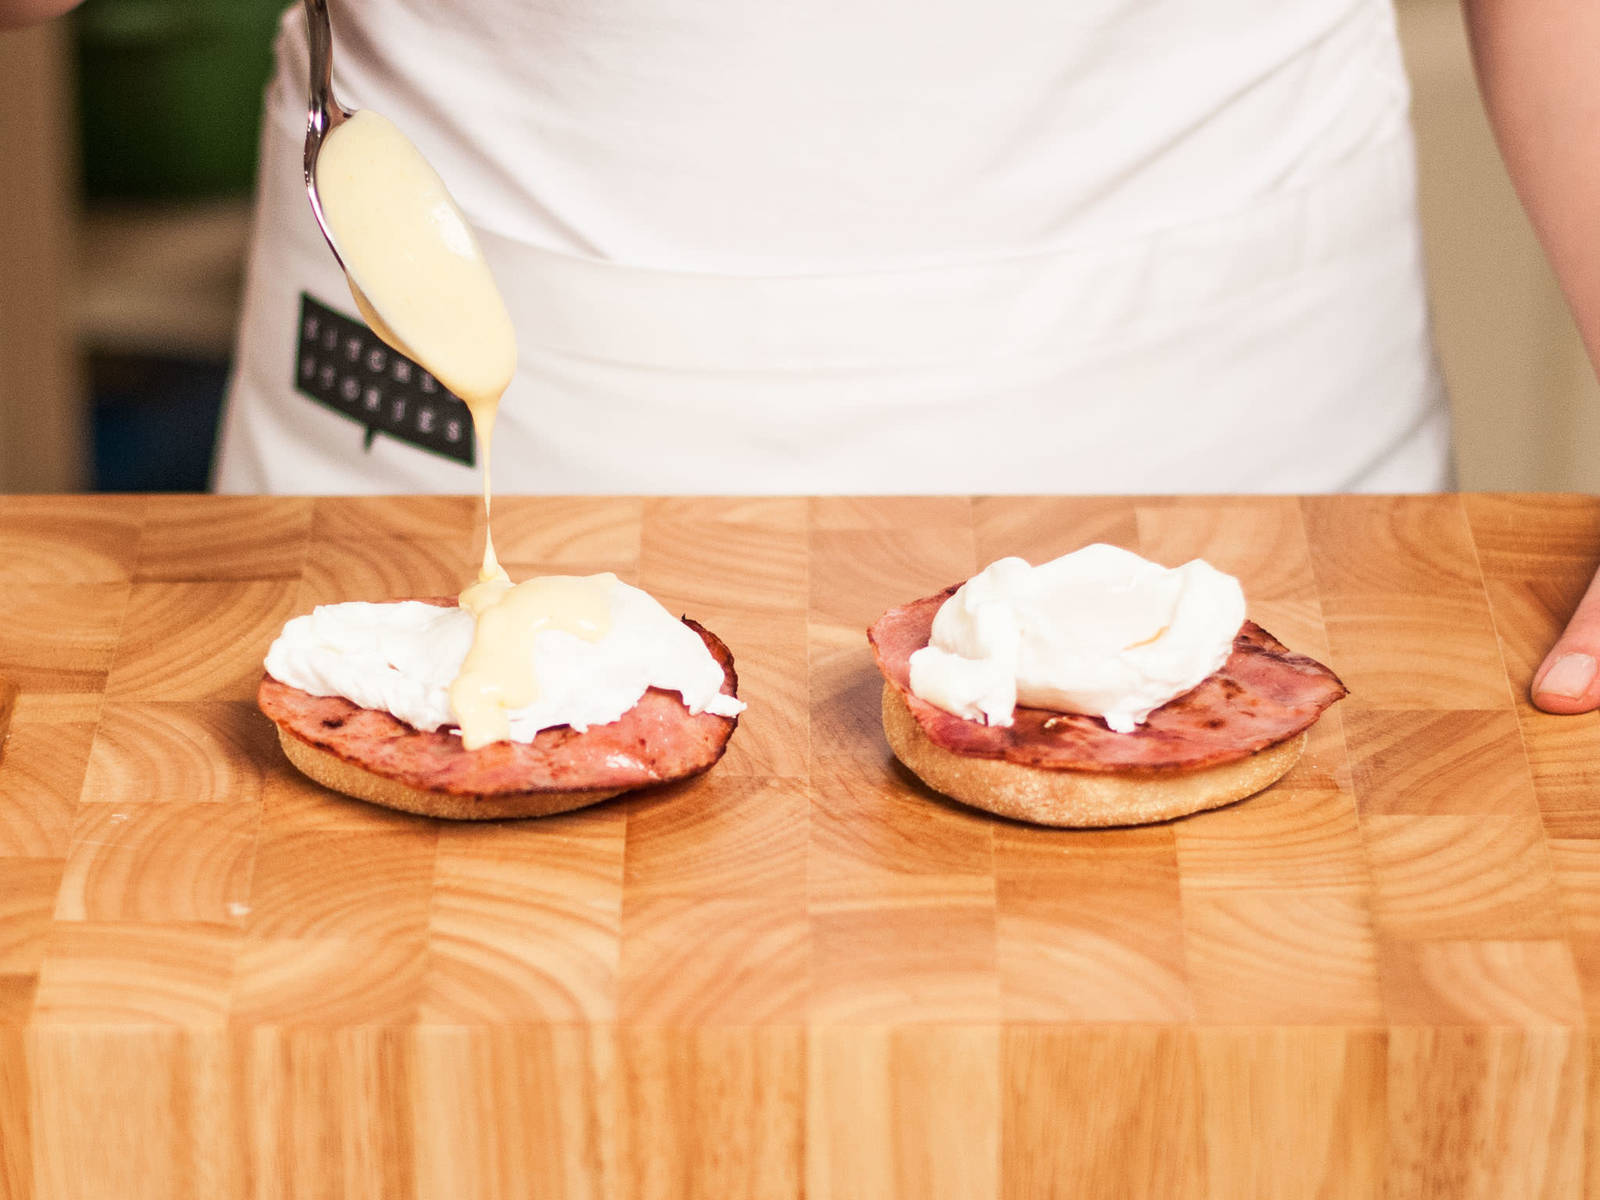 Halve English muffins, top each with a slice of ham and a poached egg. Sprinkle with some salt and warm hollandaise sauce.